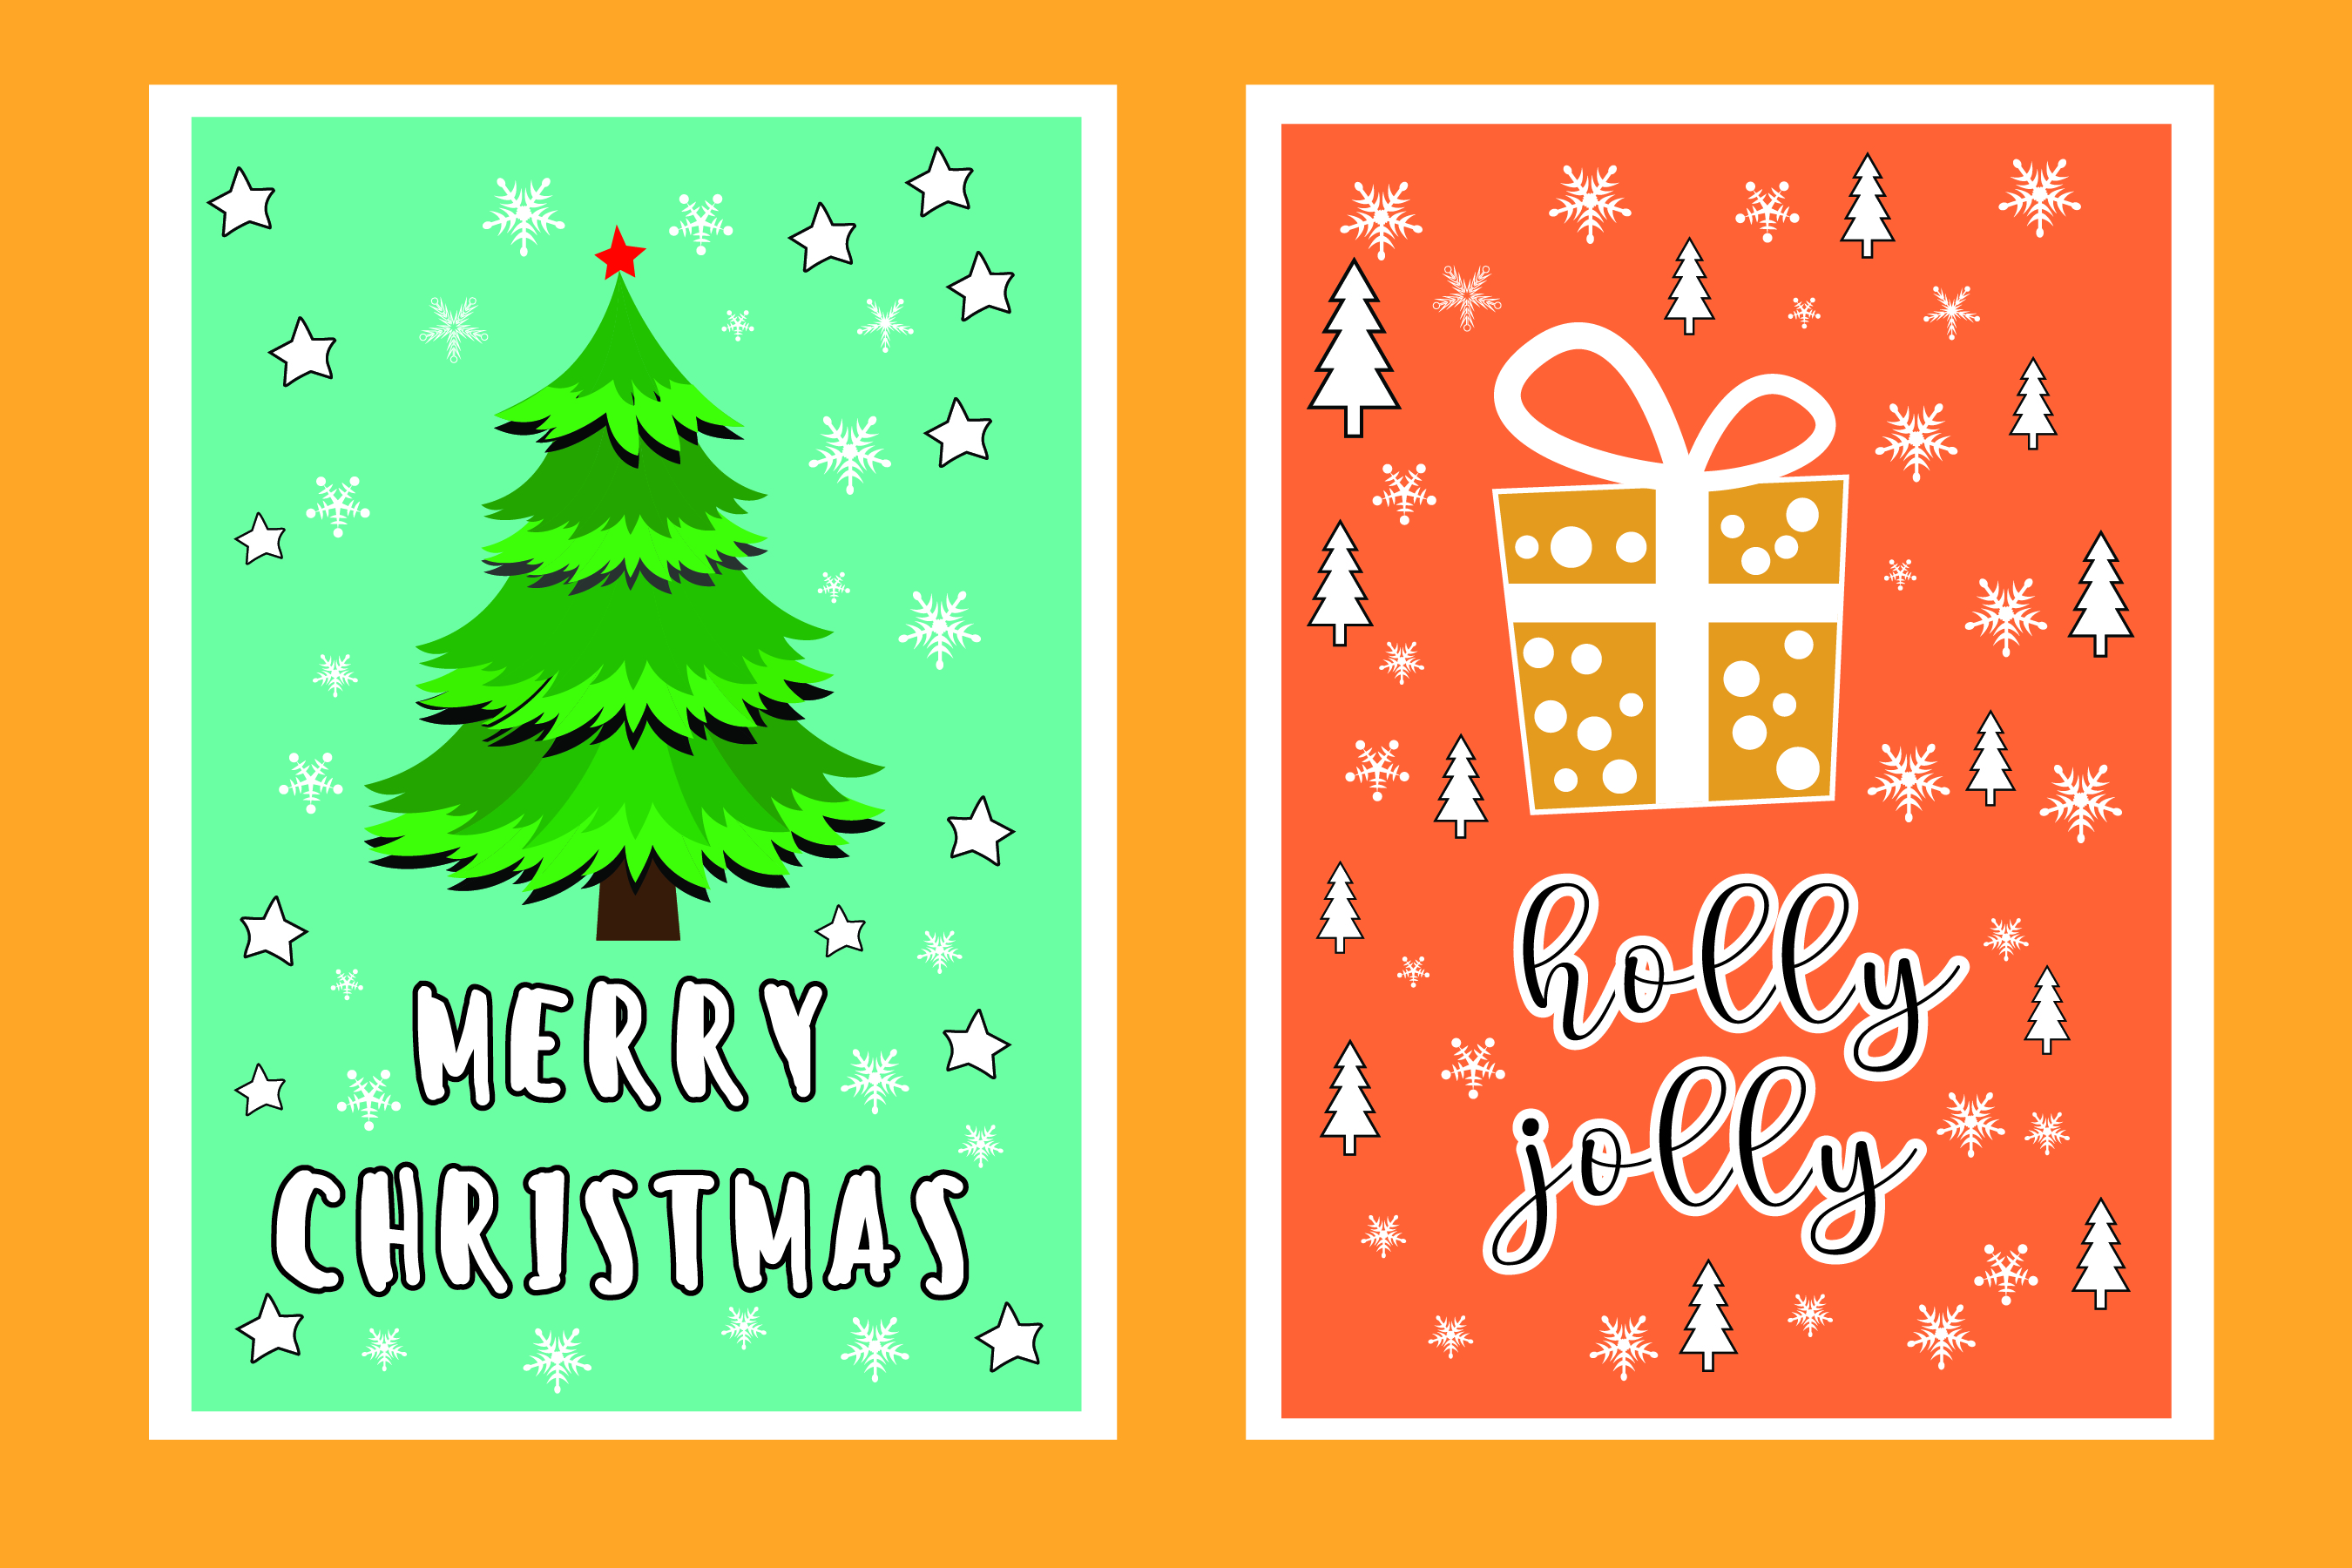 Download Christmas Card Svg Files For Cricut Free Cut Files Include Svg Dxf Eps And Png Files